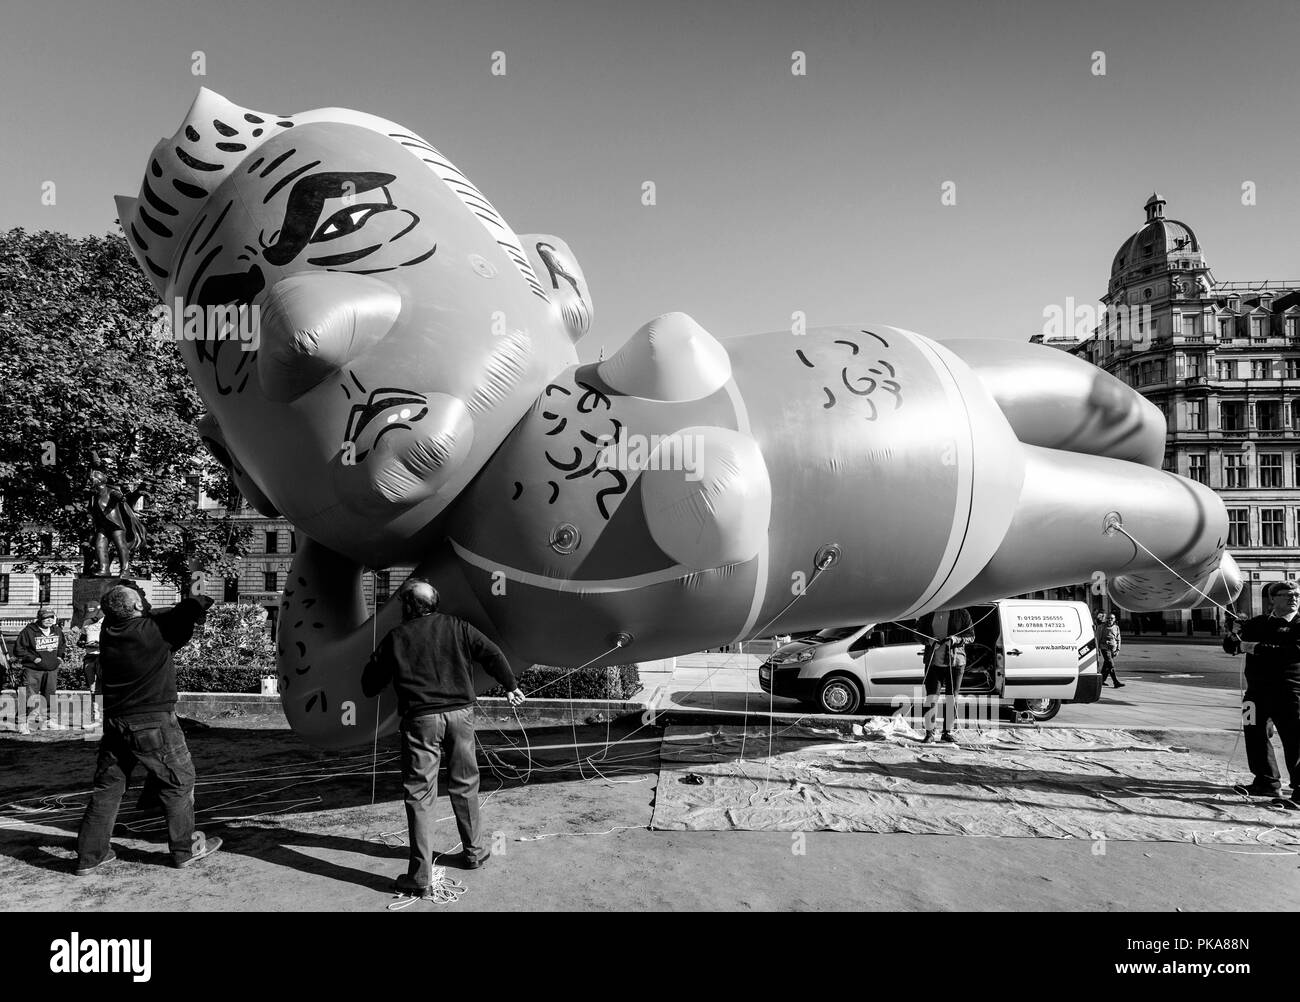 Protesters Fly a 29ft Long Bikini-Clad Blimp of London Mayor Sadiq Khan Over Parliament Square, London, UK - Stock Image